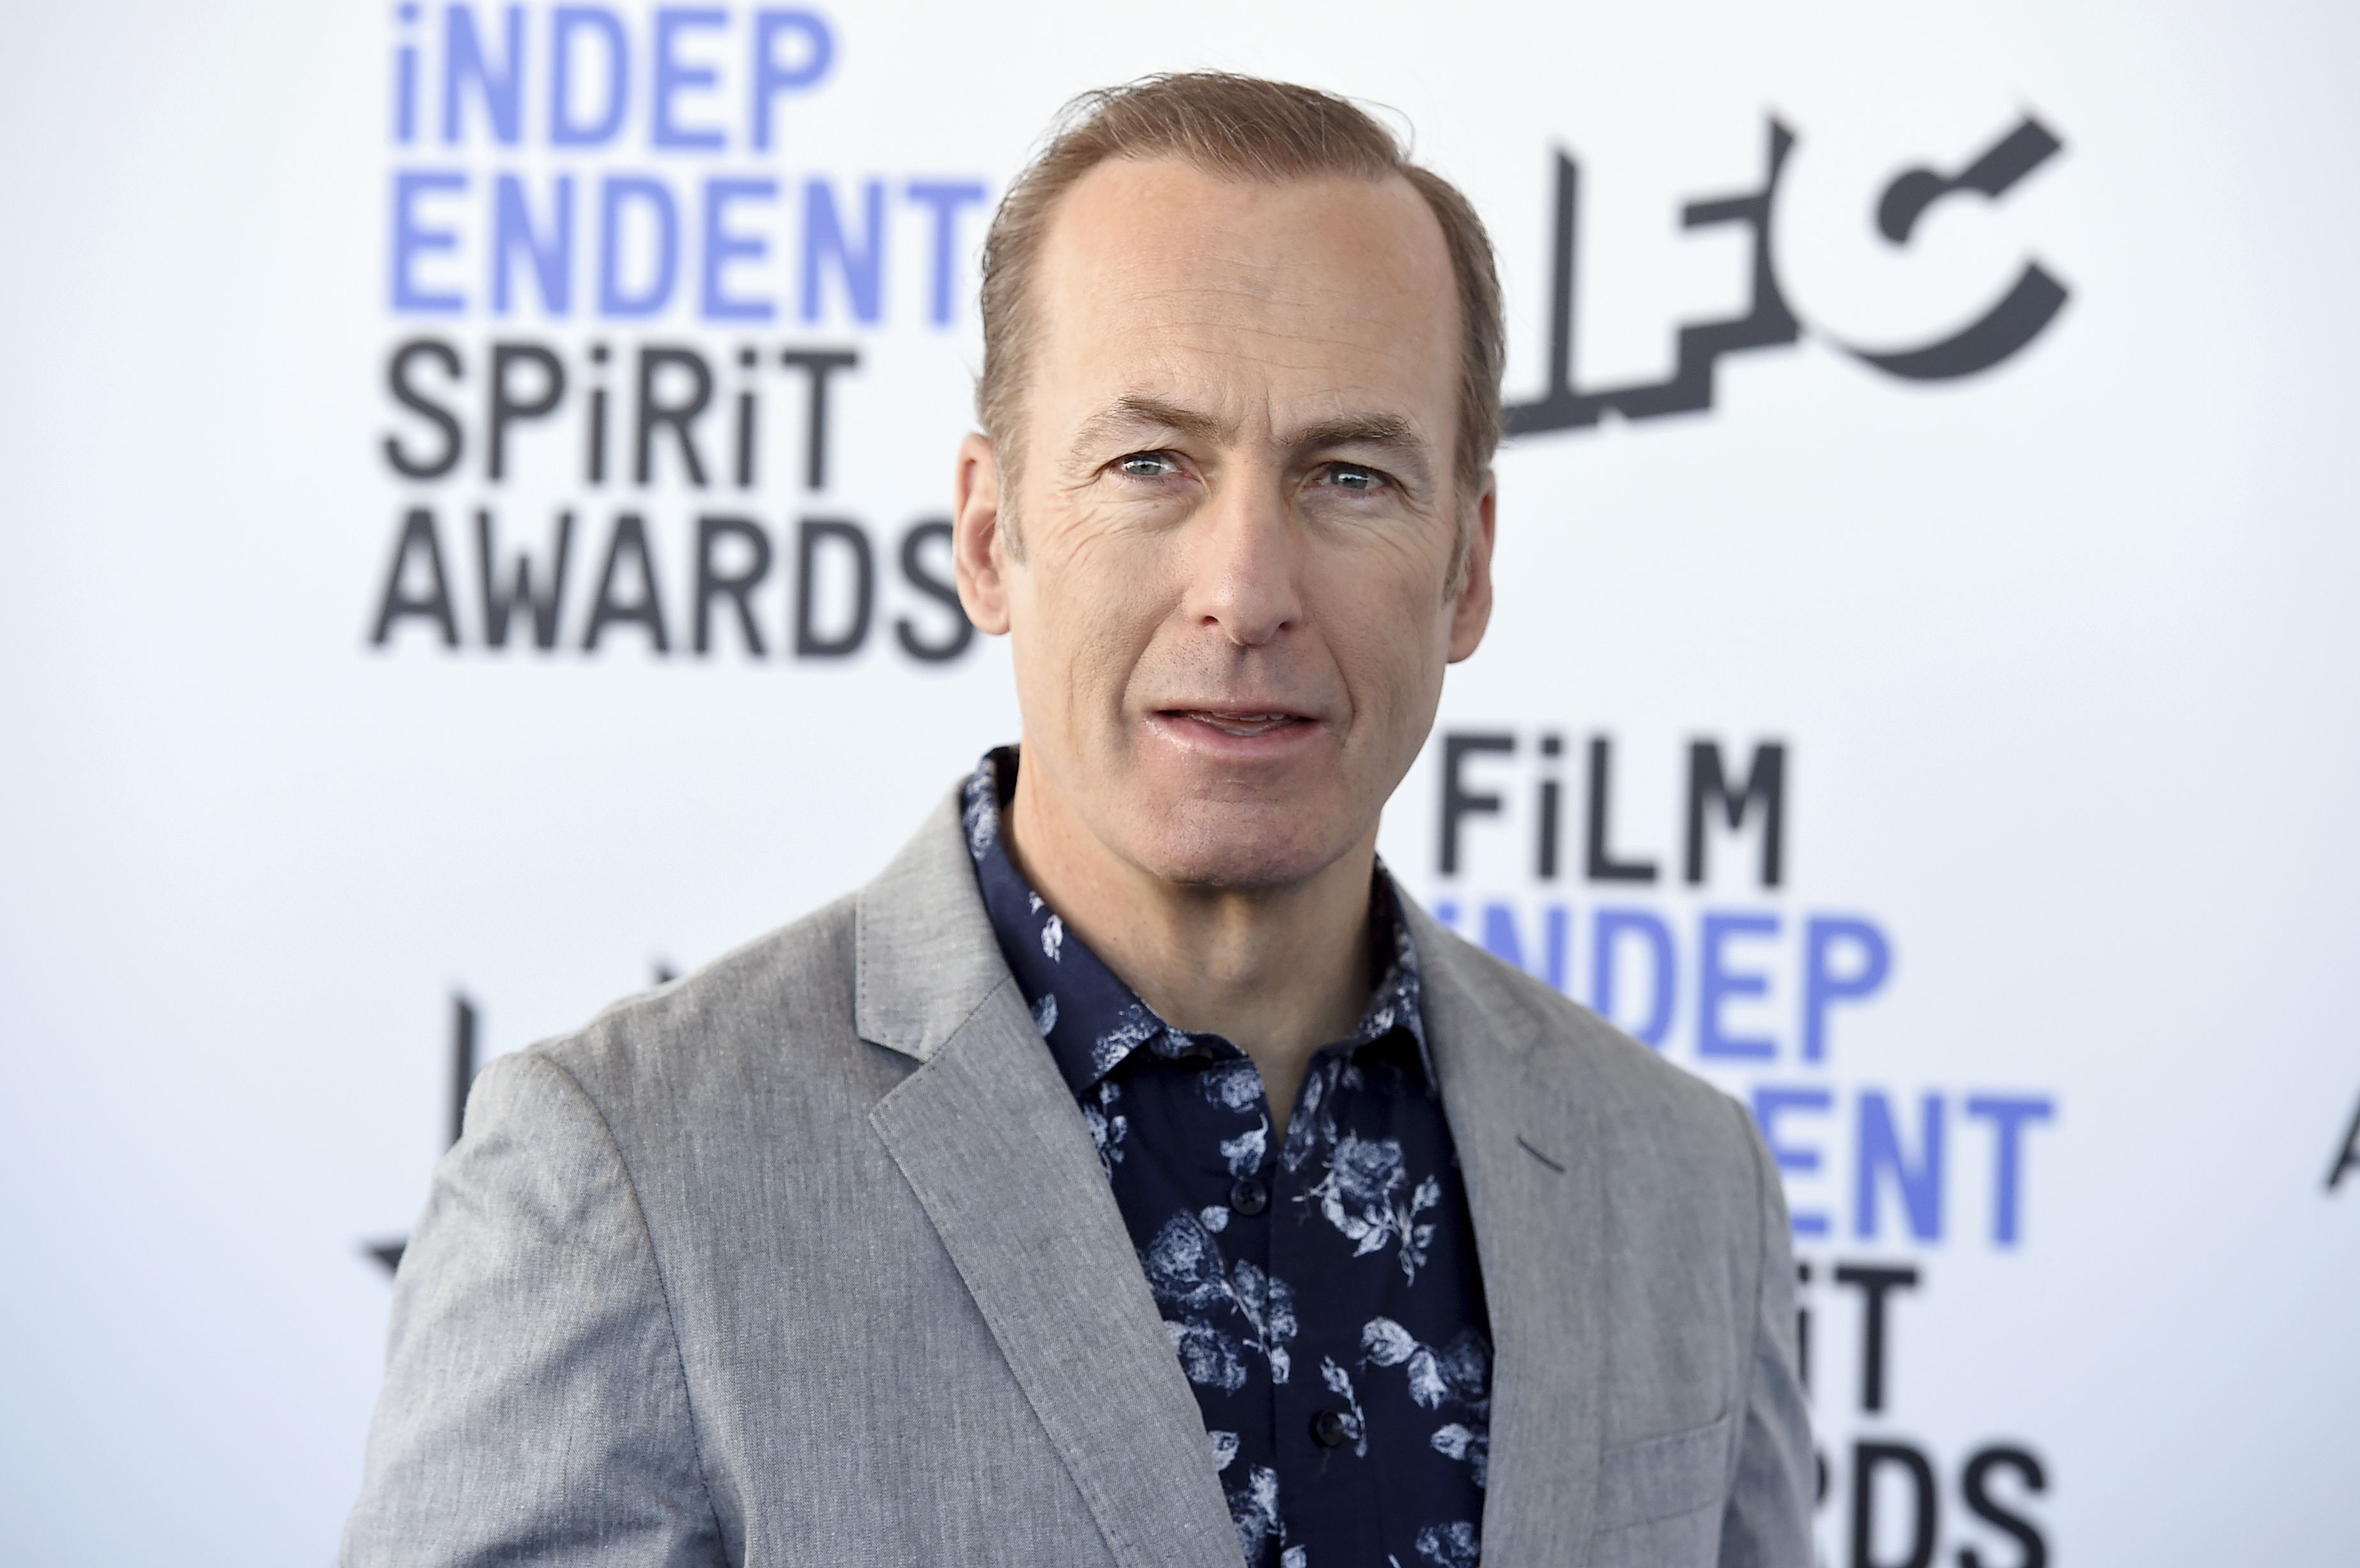 Bob Odenkirk arrives at the 35th Film Independent Spirit Awards in 2020 in Santa Monica, California.